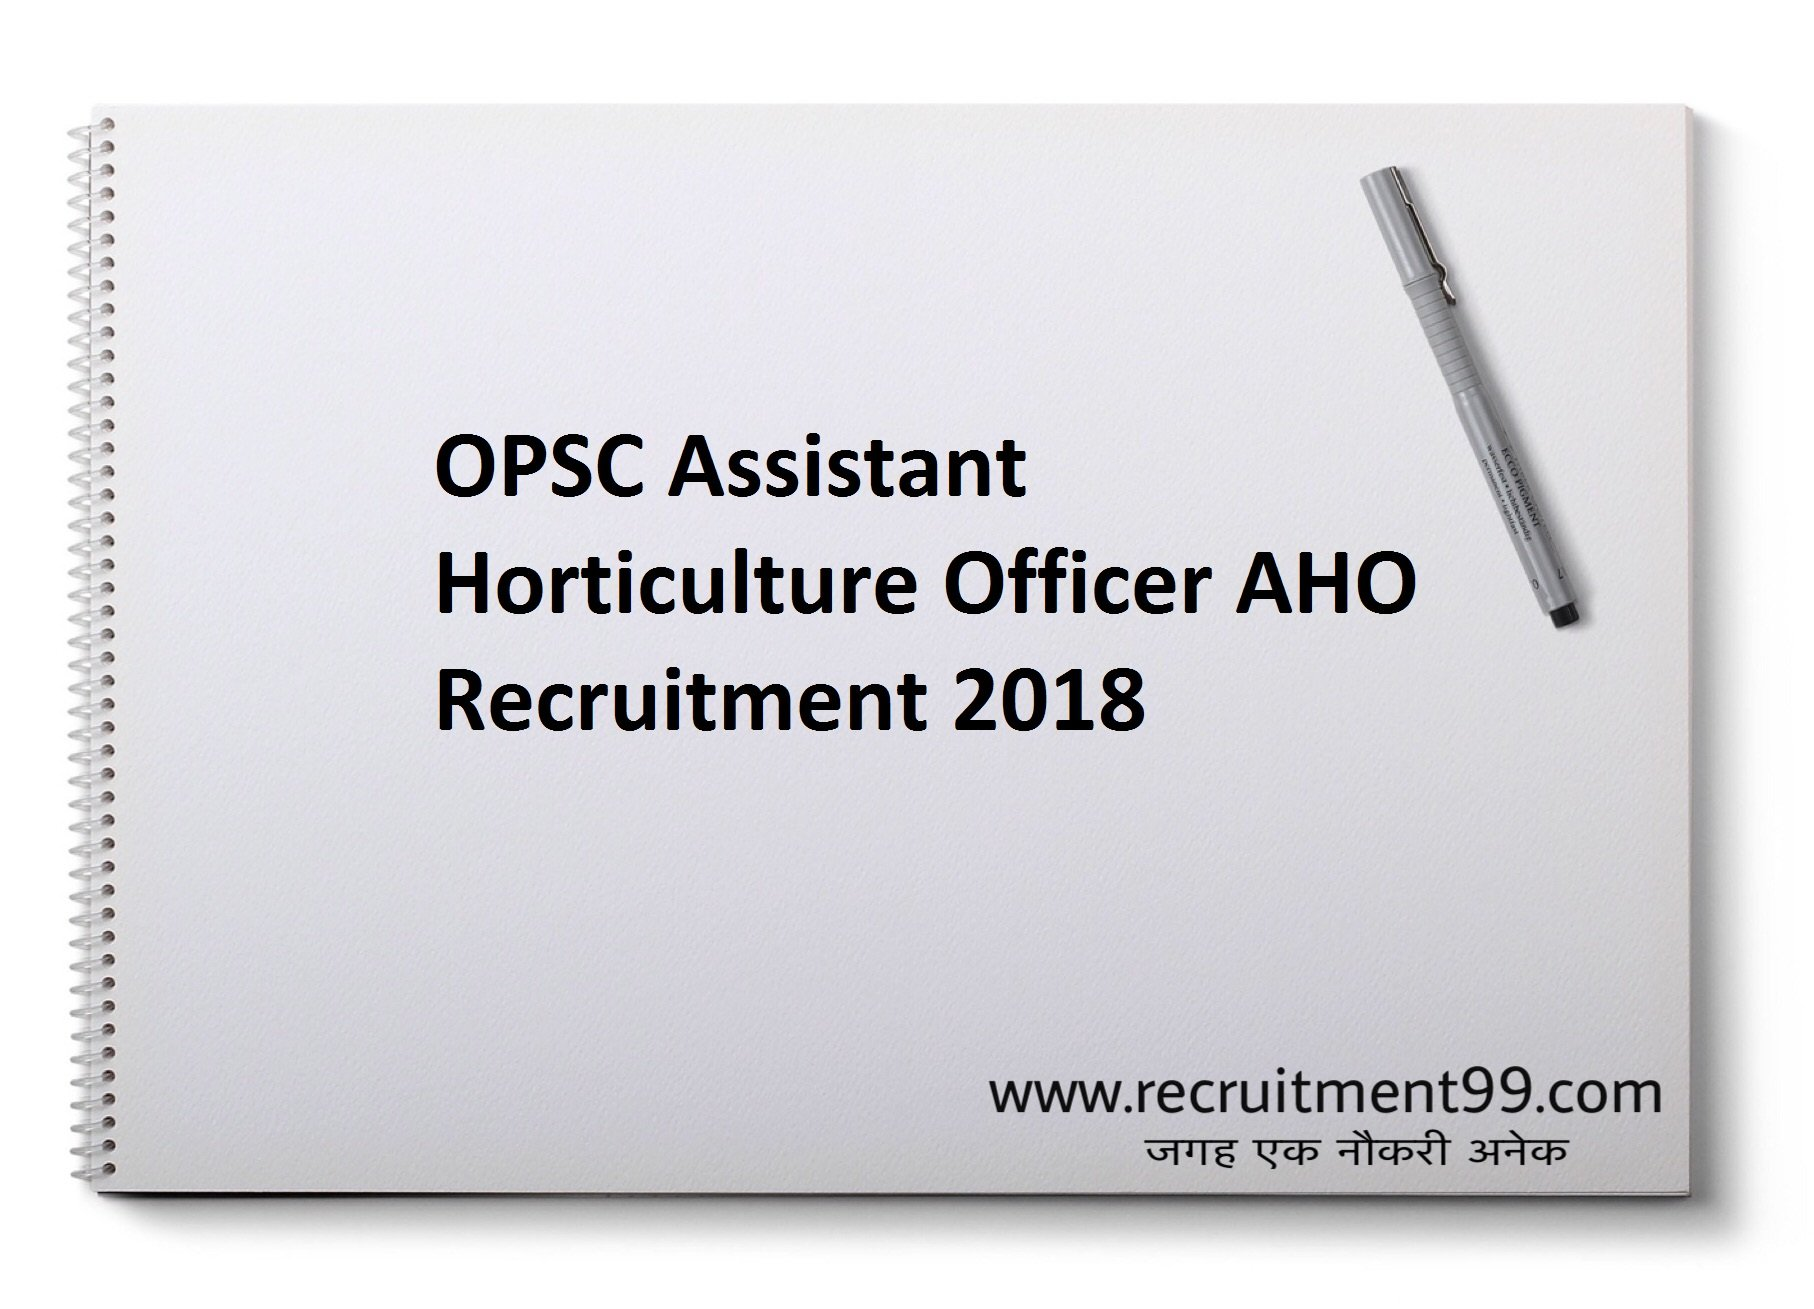 OPSC Assistant Horticulture Officer AHO Recruitment Admit Card Result 2018